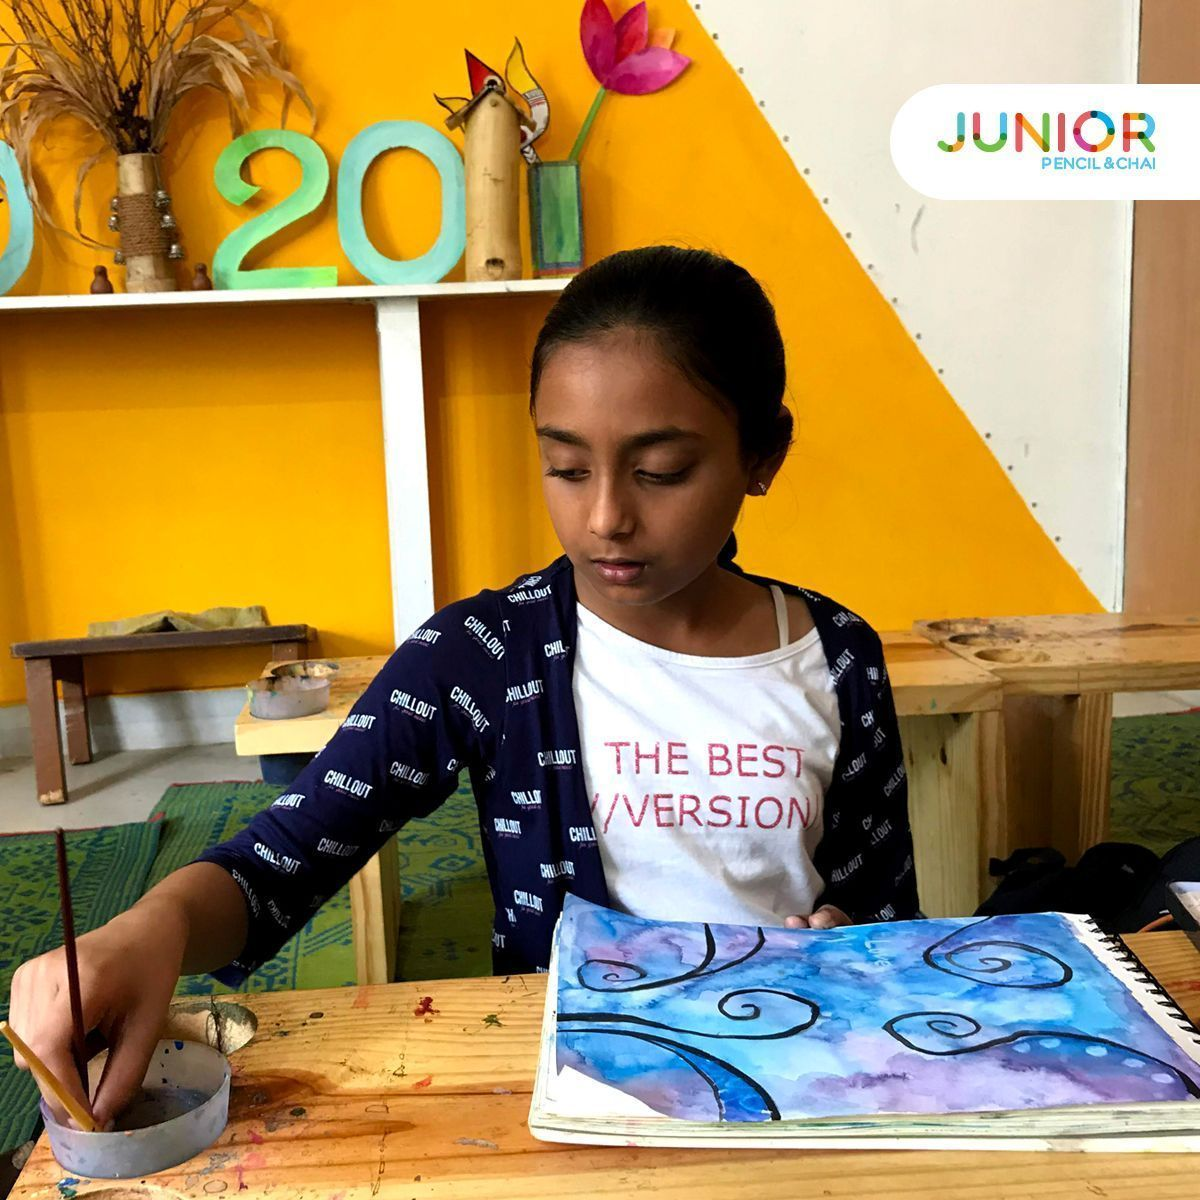 A Beautiful Aqua Blue Painting By Our Junior Cultivate A New